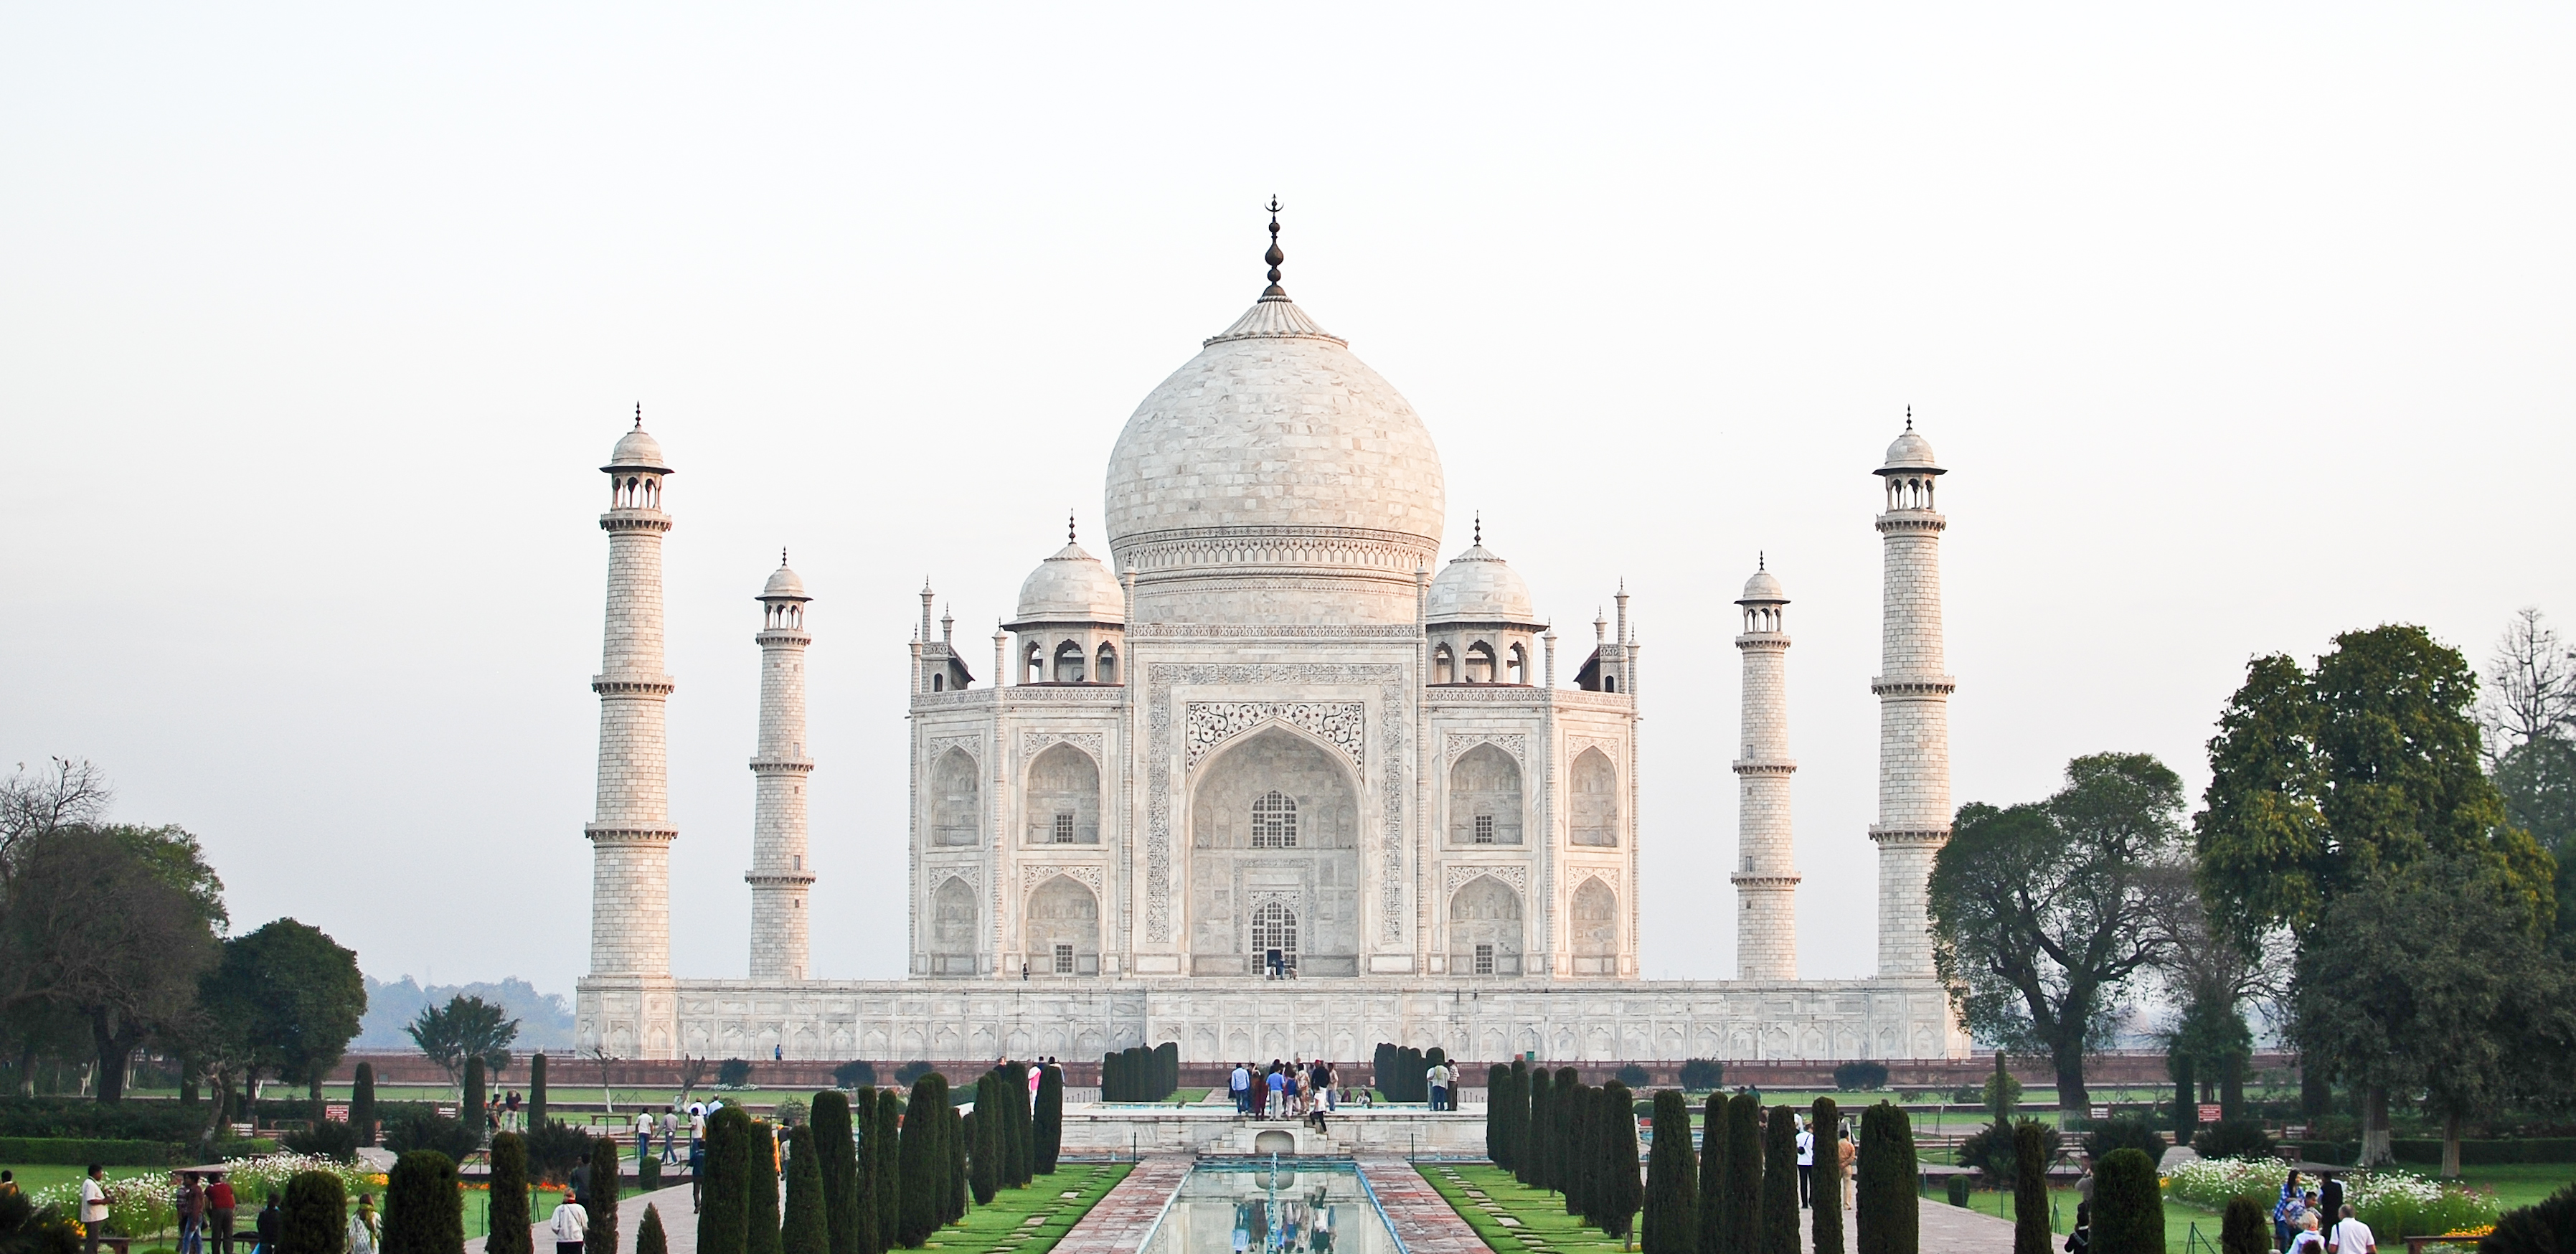 The Taj Mahal in Agra, India photo